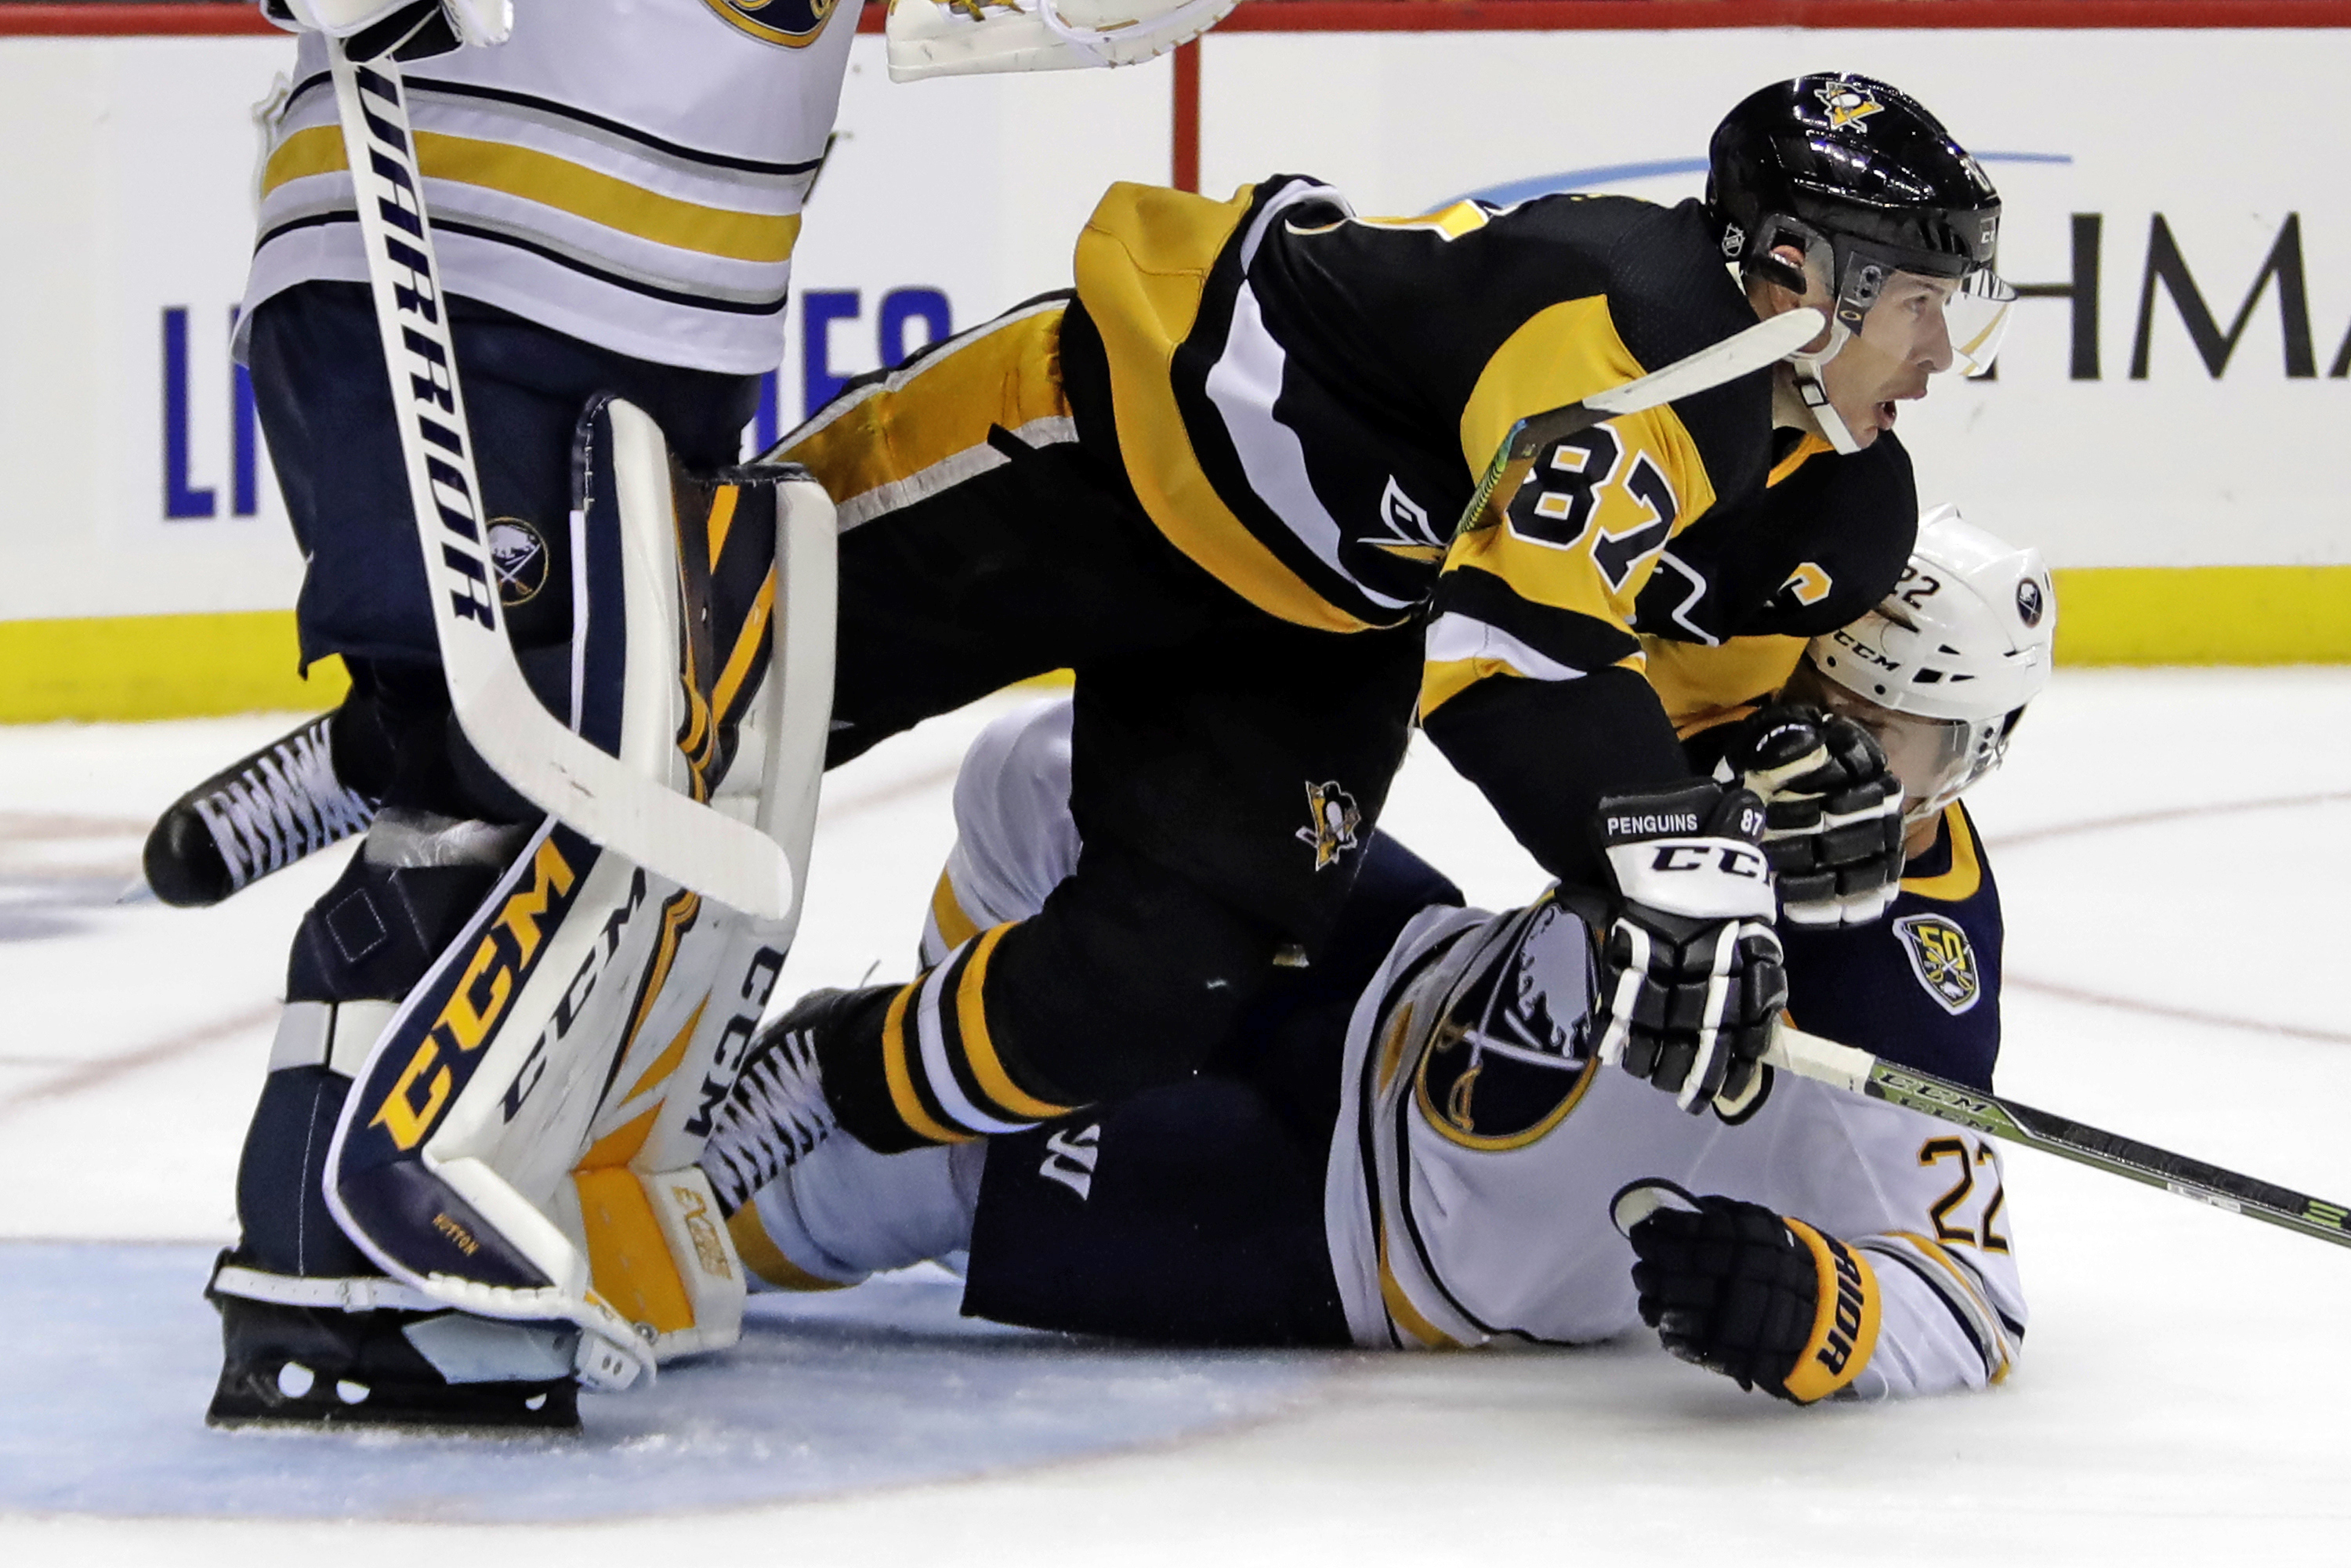 Sheary scores twice against old team, Sabres beat Penguins